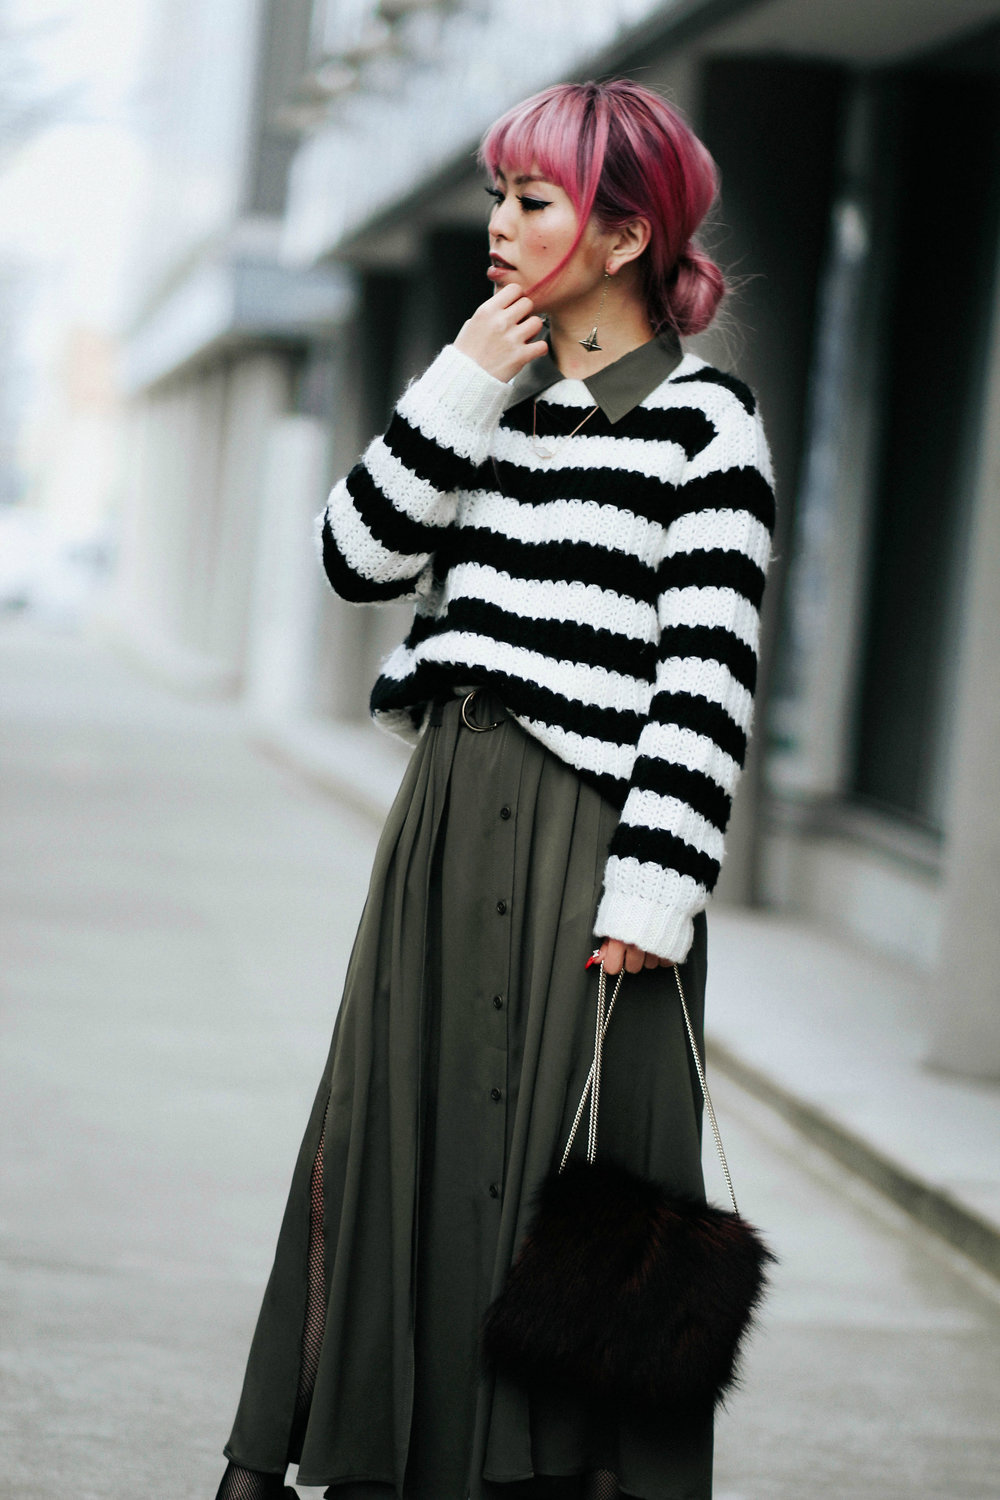 Who What Wear Striped Sweater_DVF Clarise Midi Shirt Dress_DVF Fur Bag_Kendra Scott Diana Shoulder Duster Earrings In Antique Brass_Amazon Fishnet Tights_ZARA ASYMMETRIC LEATHER HIGH HEEL SHOES_Aikas Love Closet_Seattle Fashion Blogger_japanese_Pink Hair